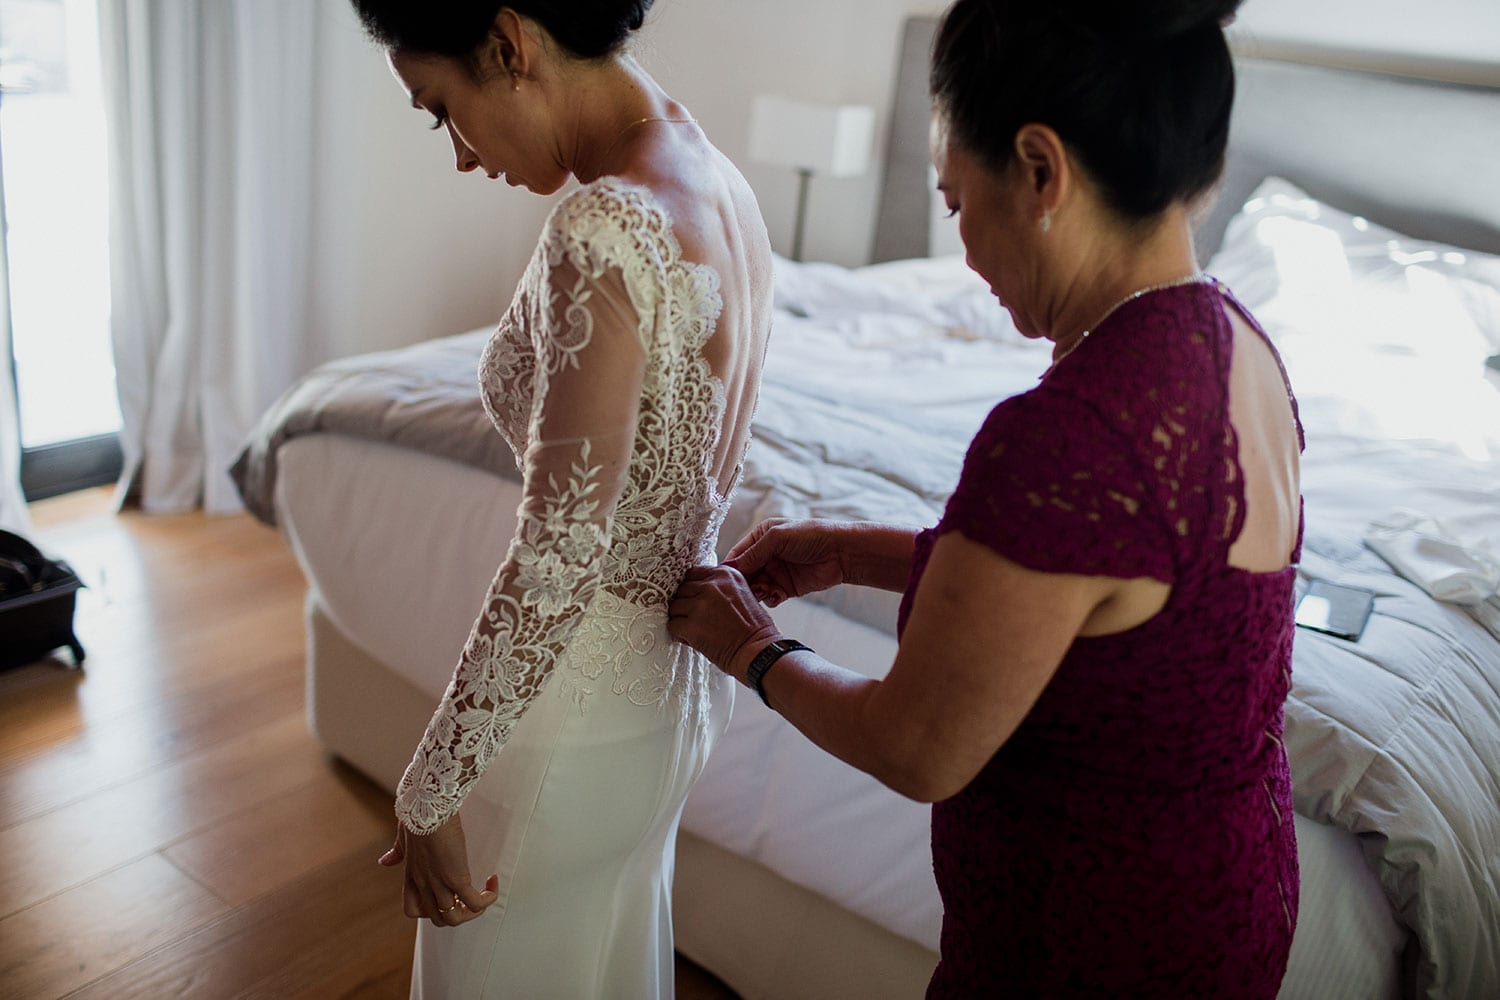 Vinka Design Features Real Weddings - Bride in bespoke custom made wedding gown being fastened at back